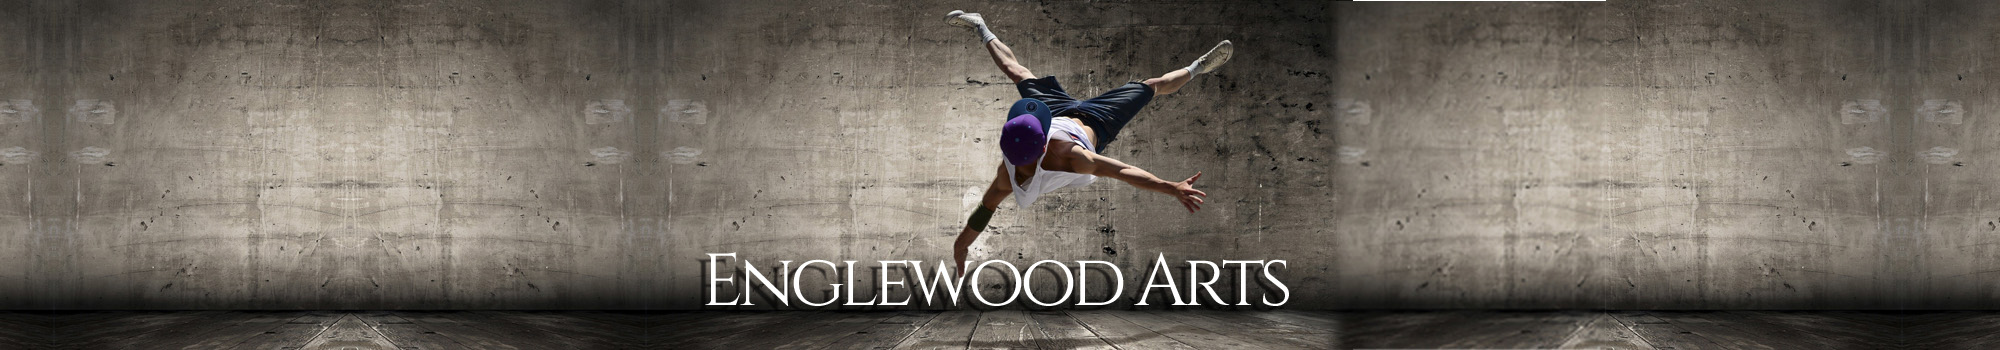 Englewood Arts supporting visual, literary, musical, culinary, and performing arts and artists in Englewood and SW Florida